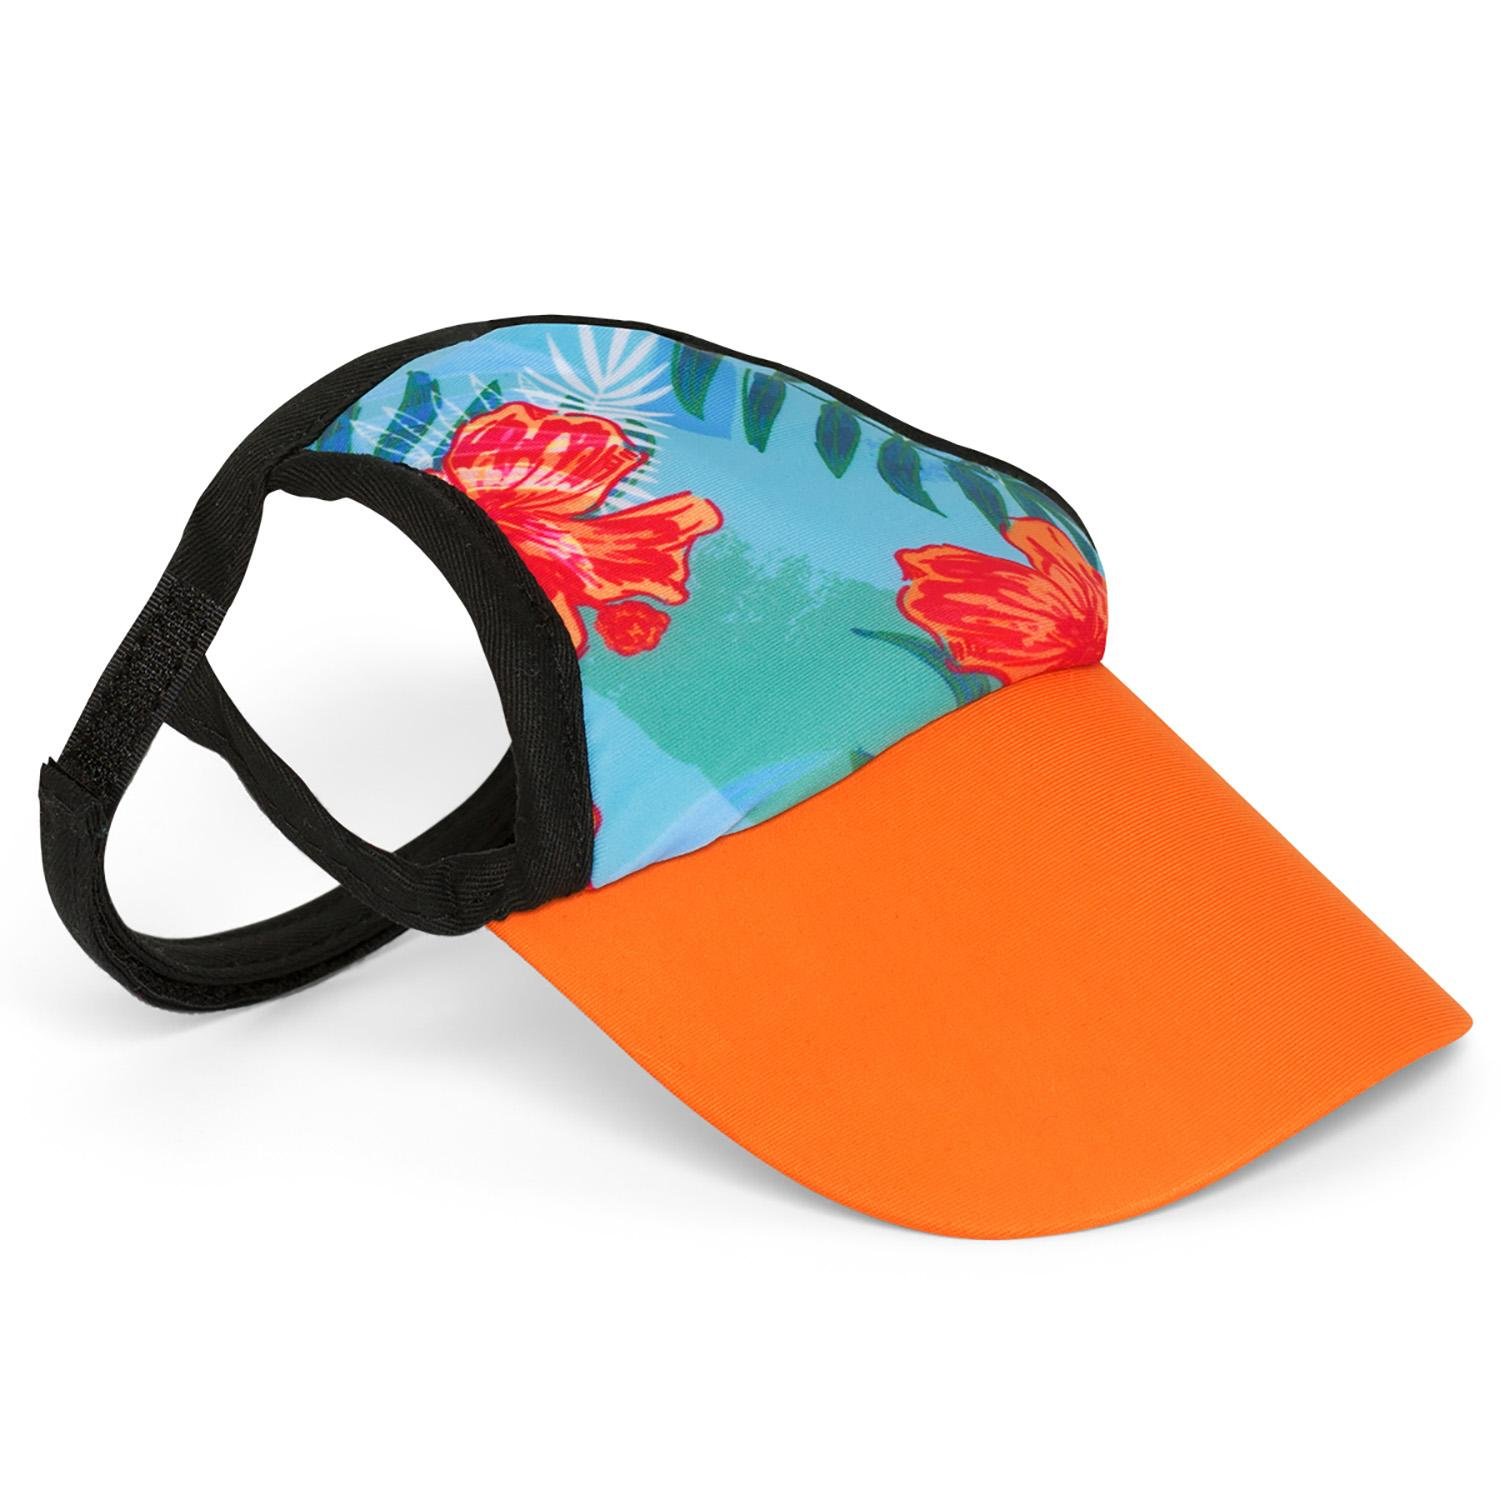 Tropical Floral Blue Dog Visor by Playa Pup